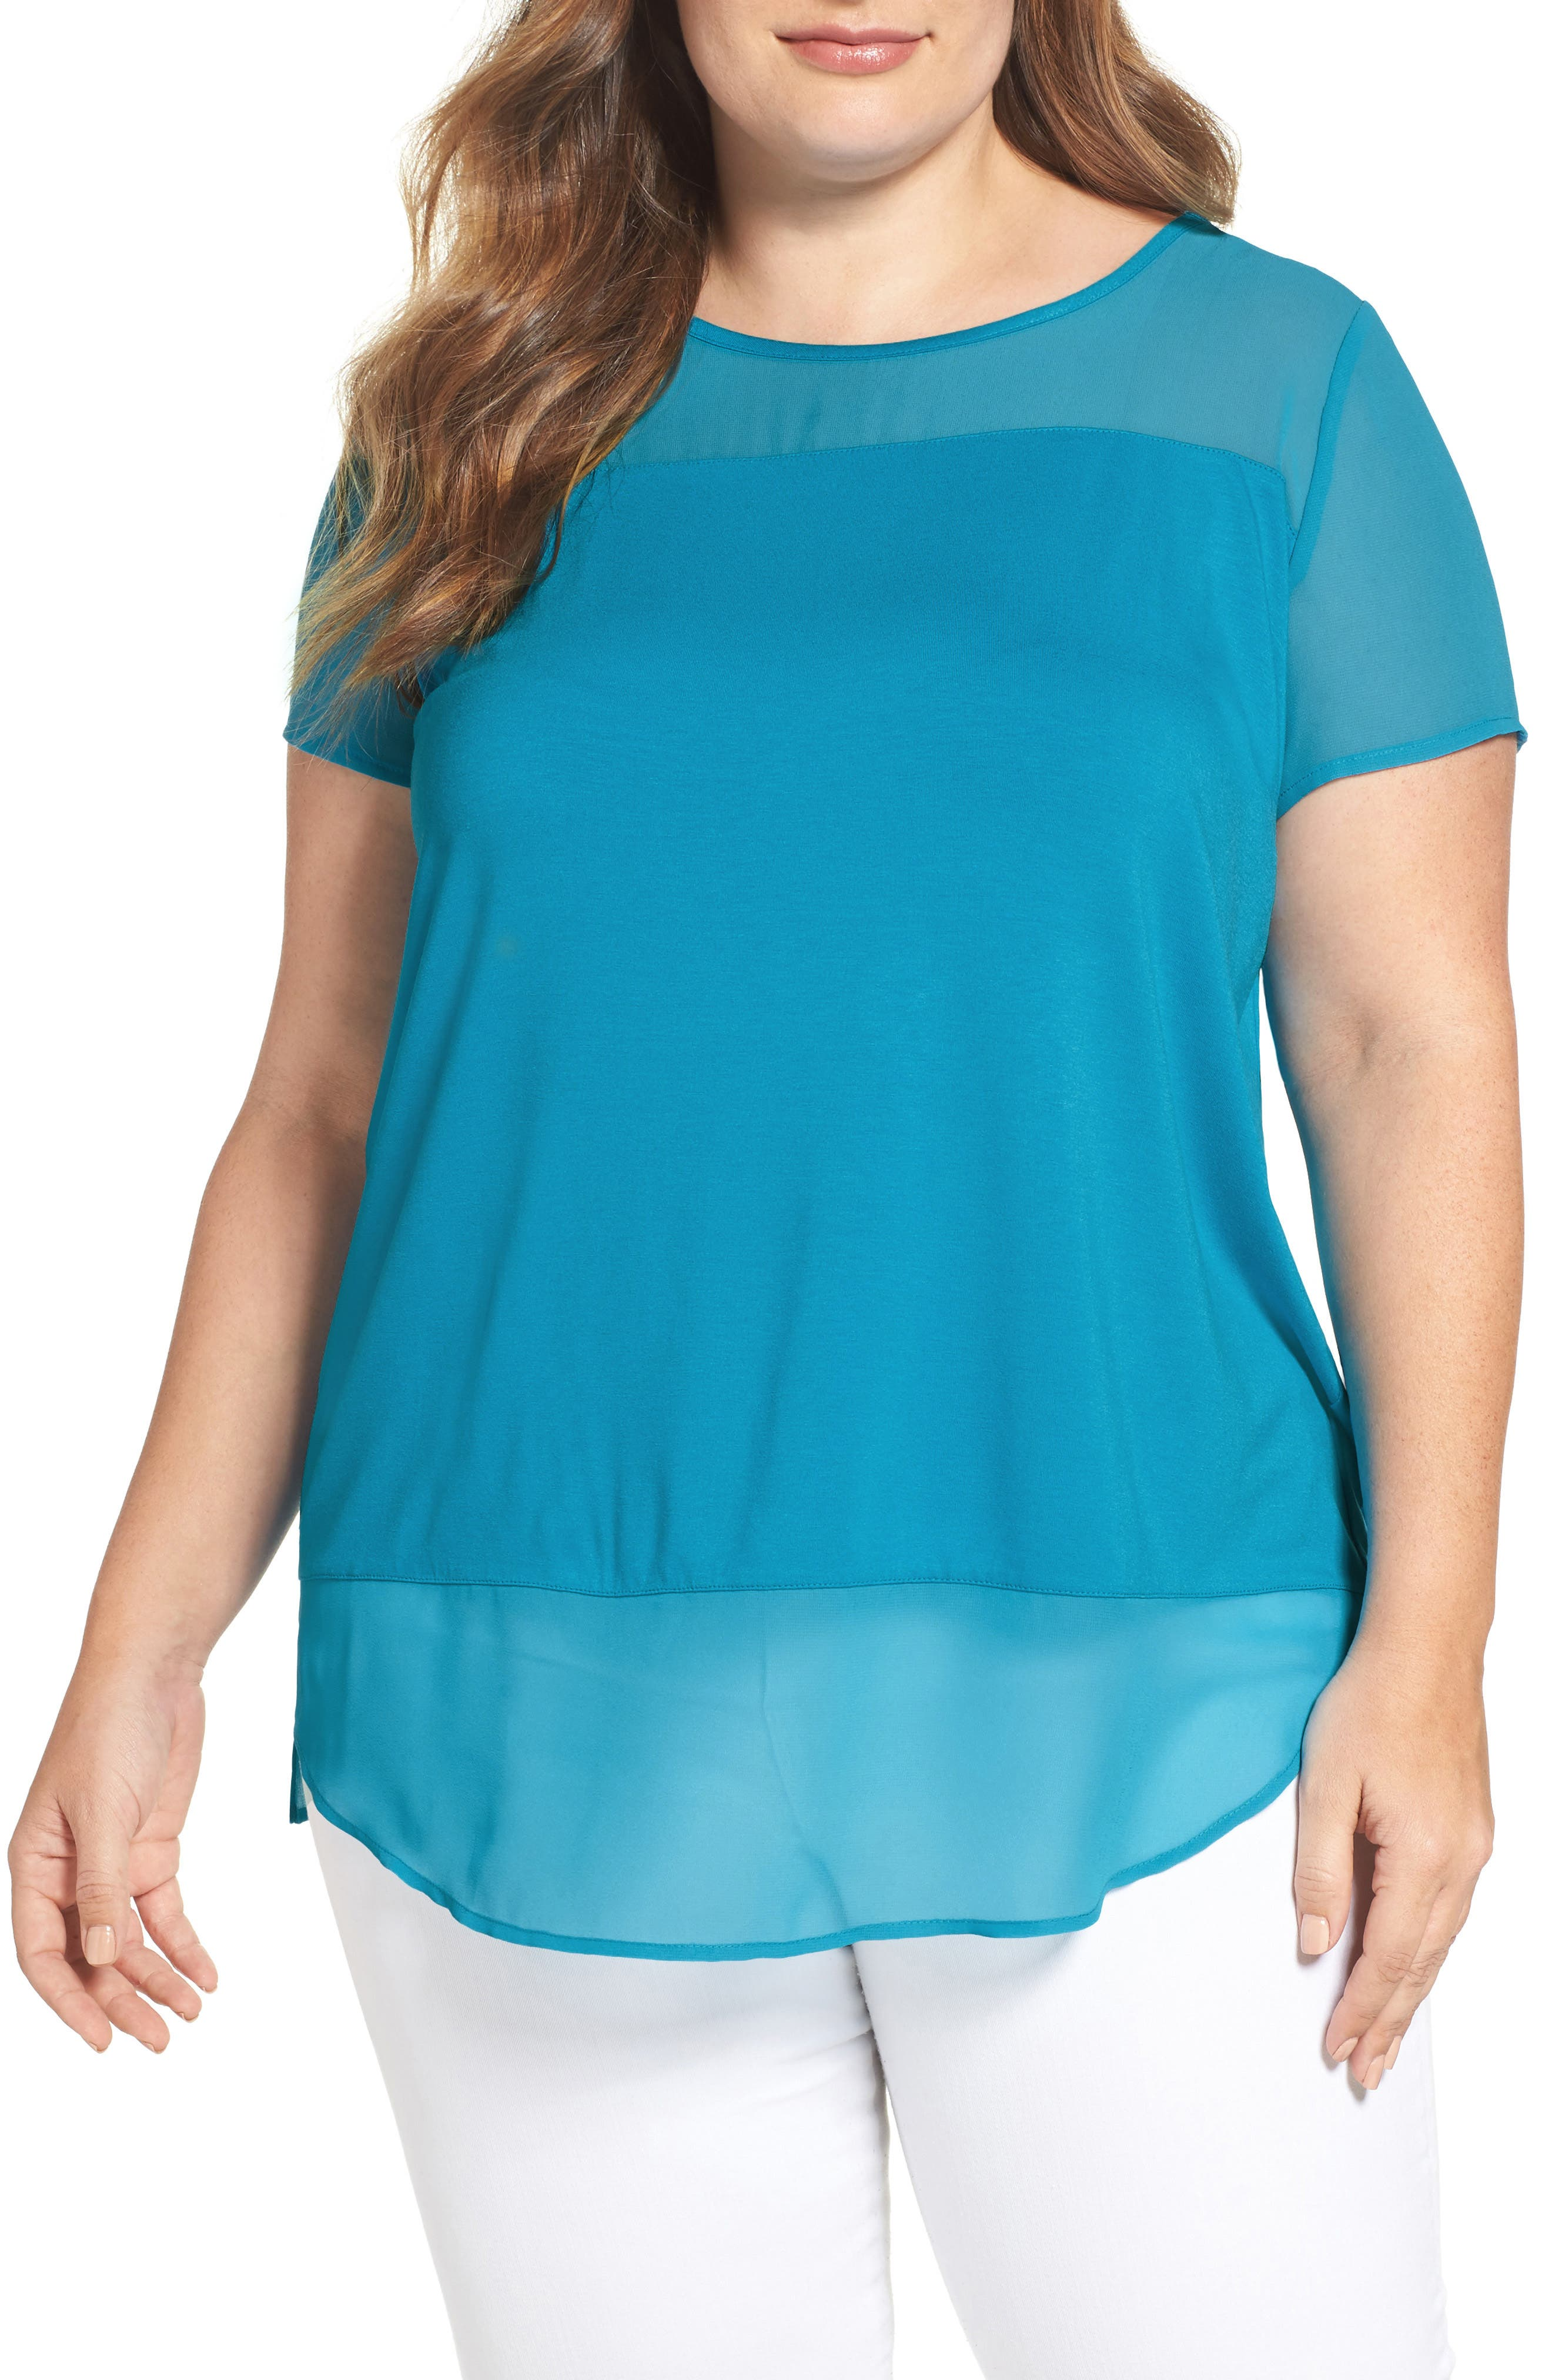 Vince Camuto Mixed Media Top (Plus Size)